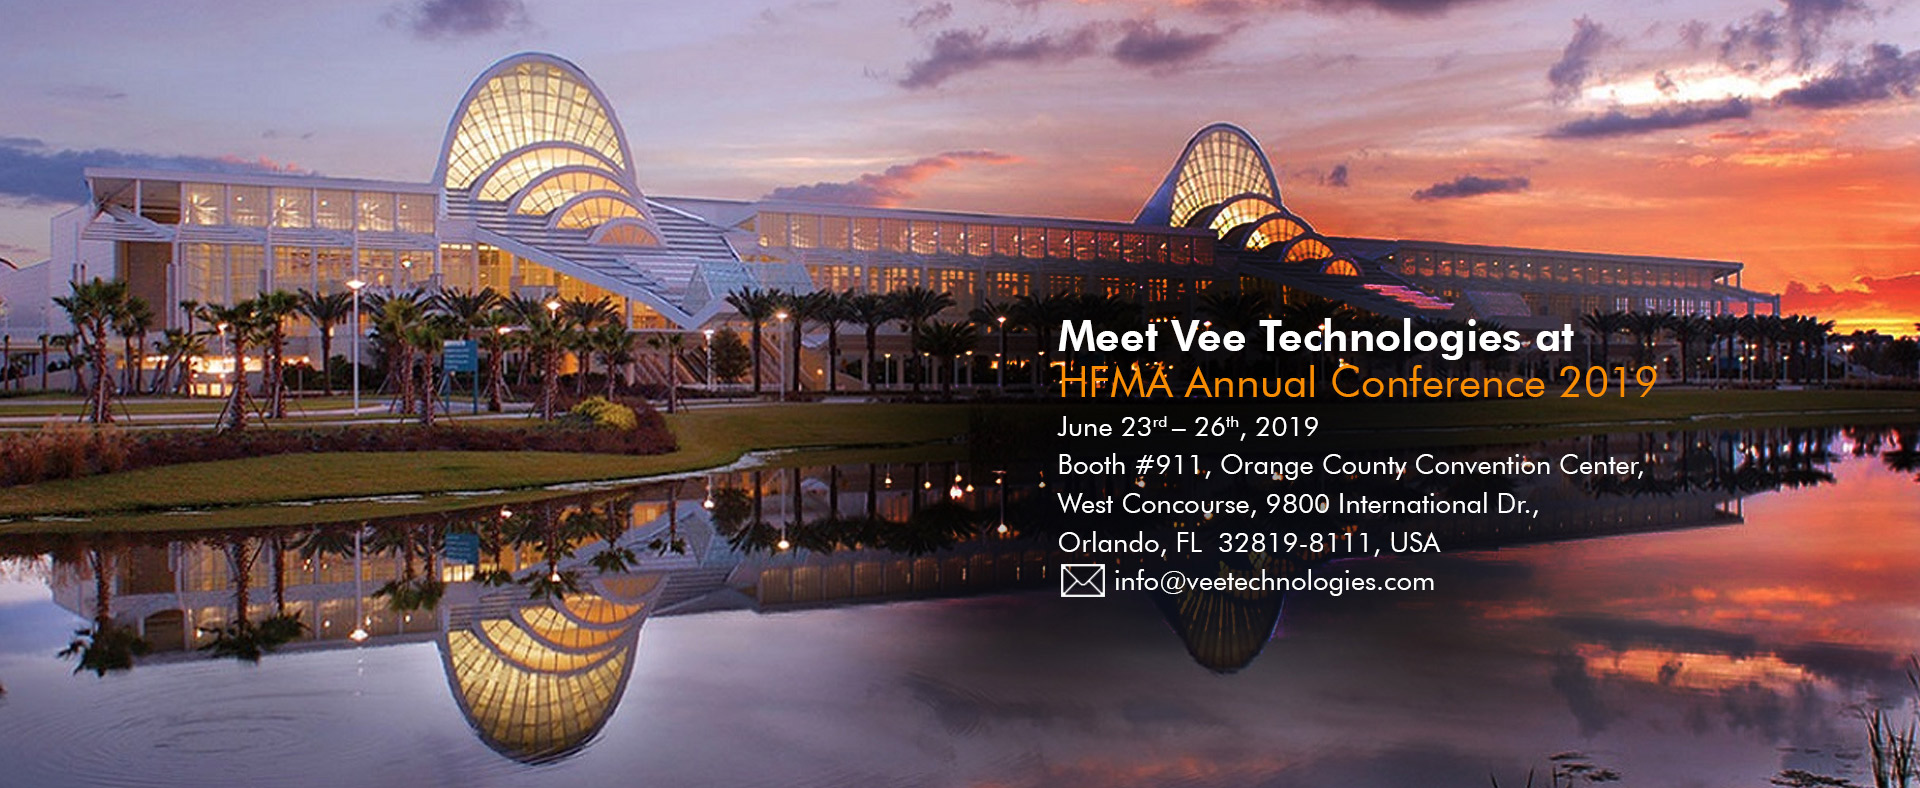 HFMA Annual Conference - 2019